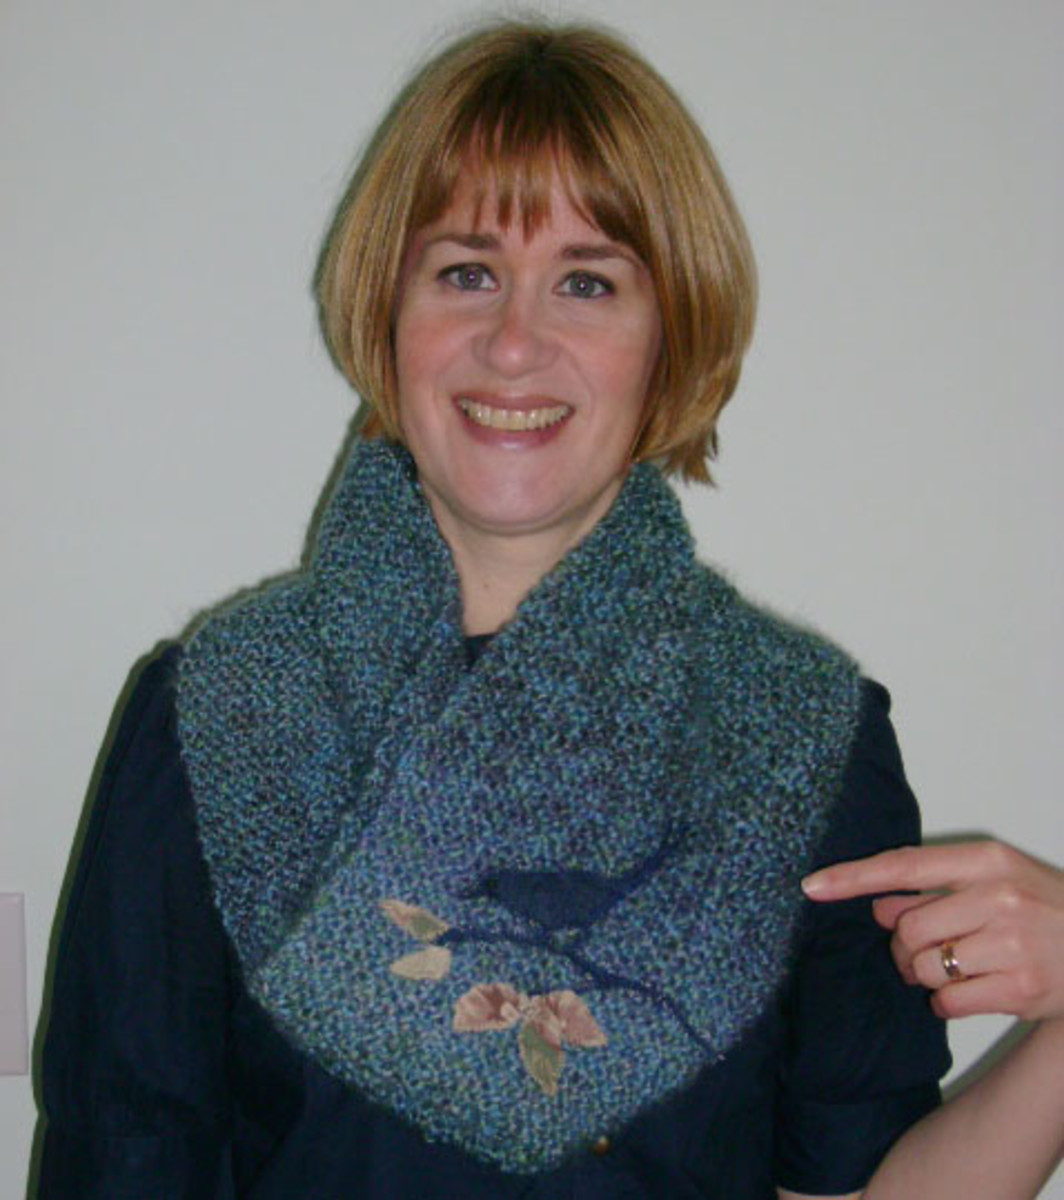 Proudly wearing my first knitting project!